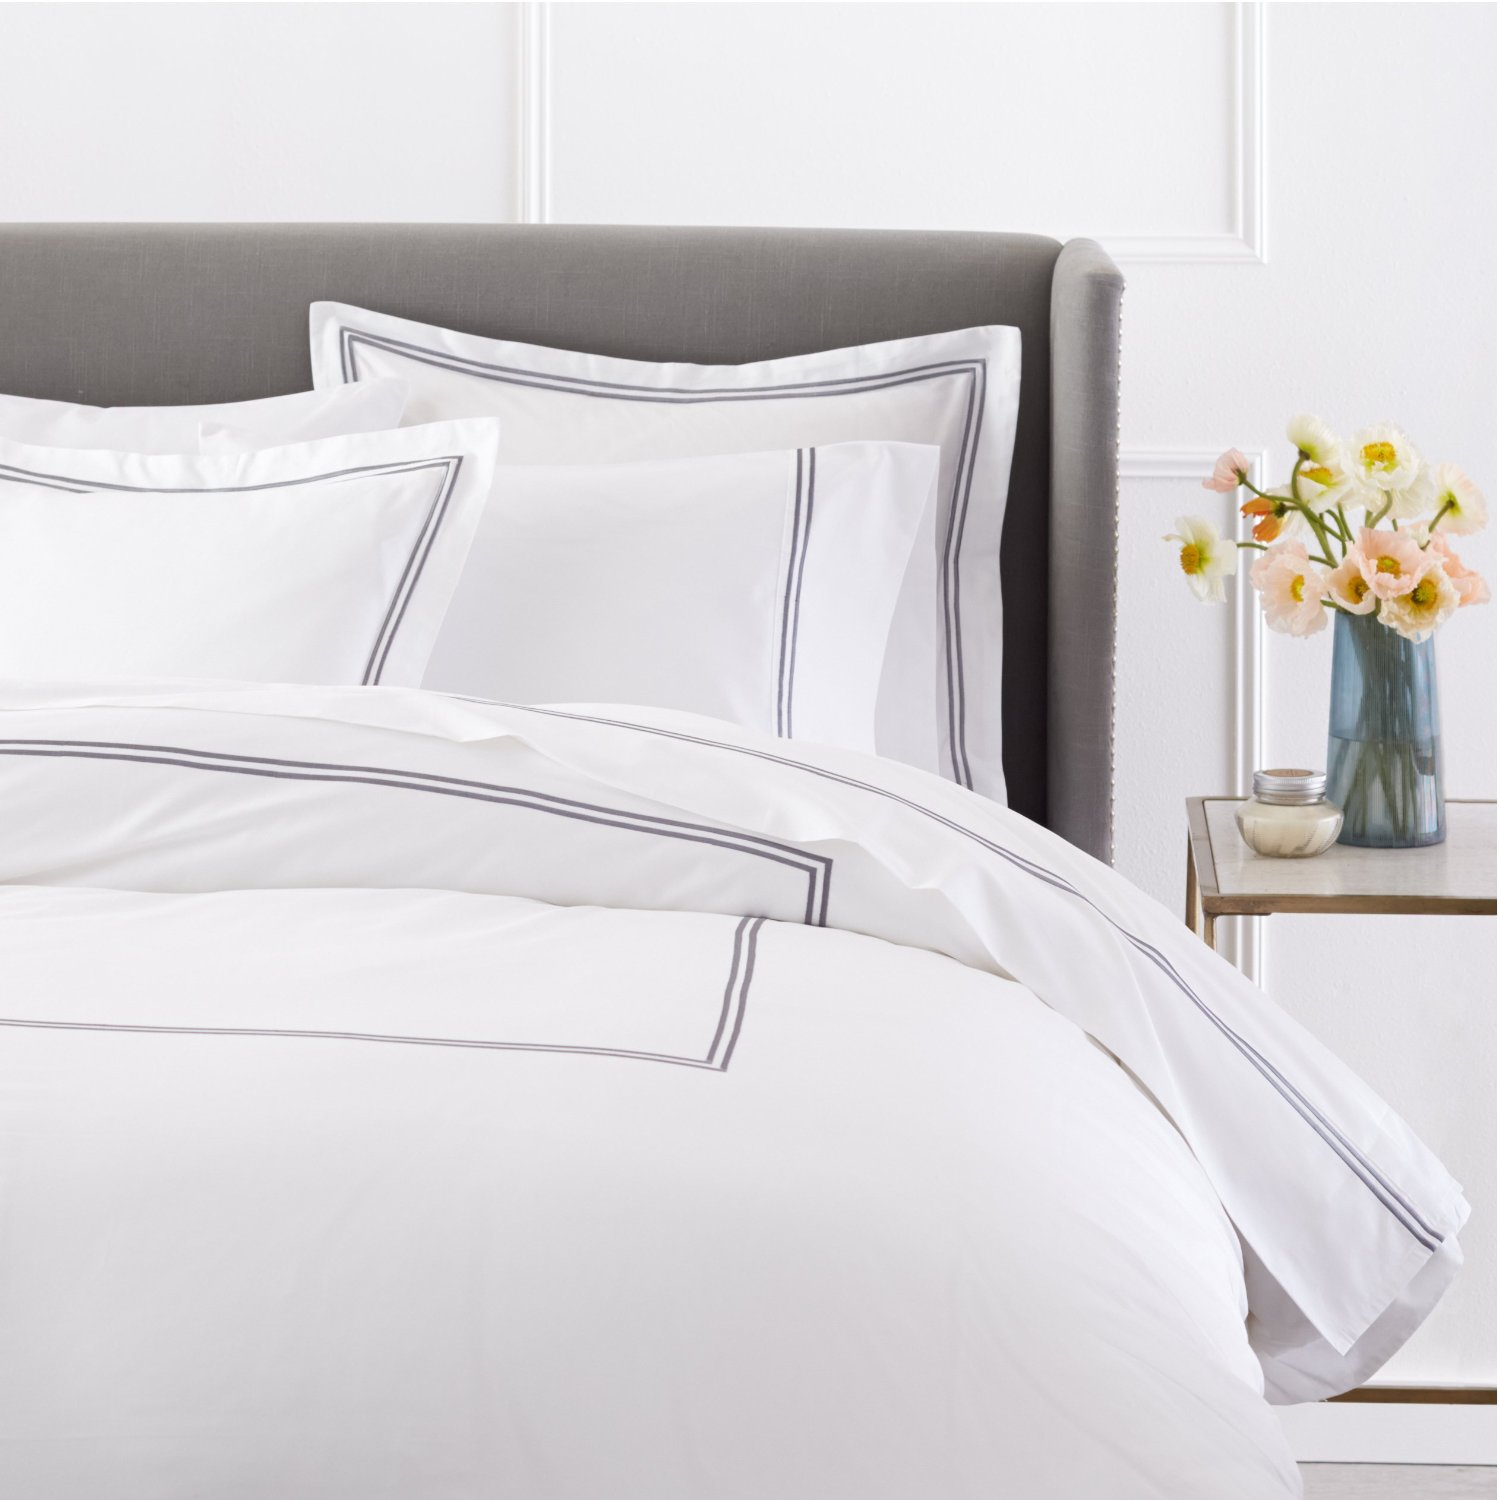 Organic Duvet Cover | Queen Duvet Cover | White Duvet Cover Queen